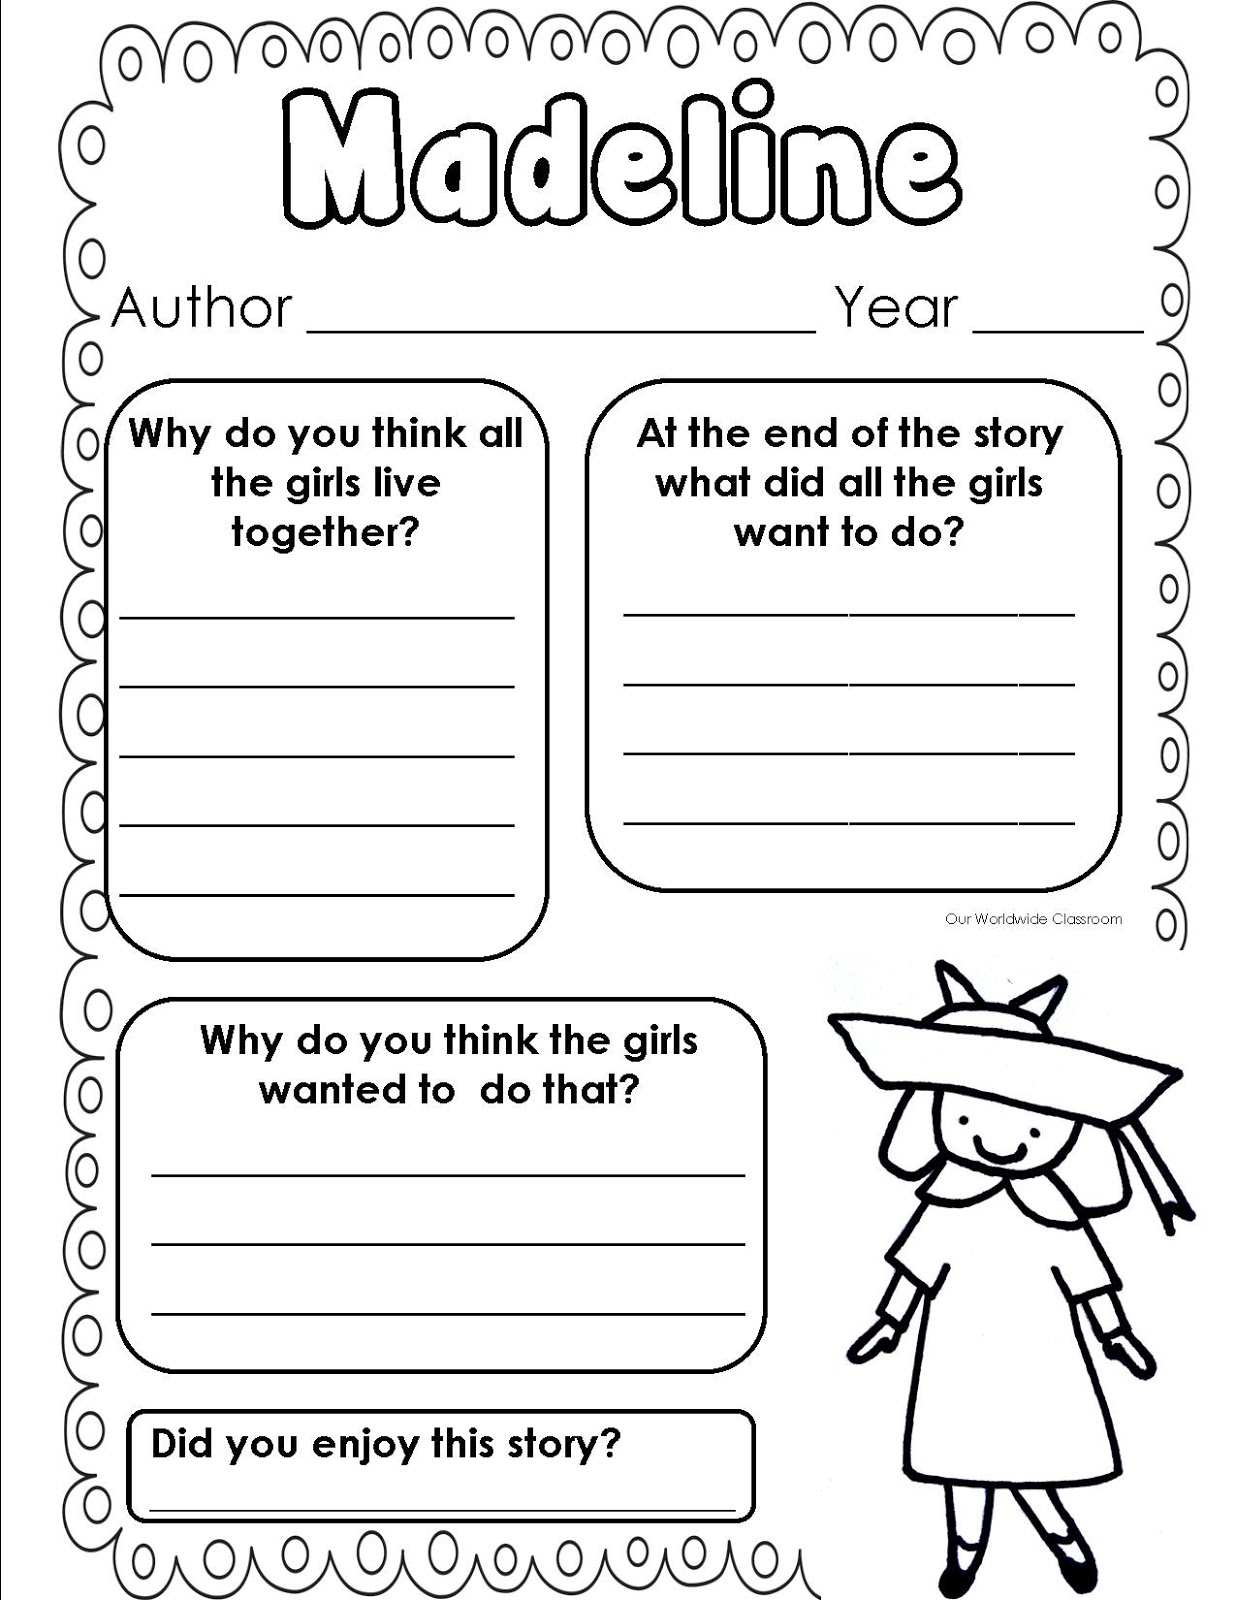 Madeline Worksheet